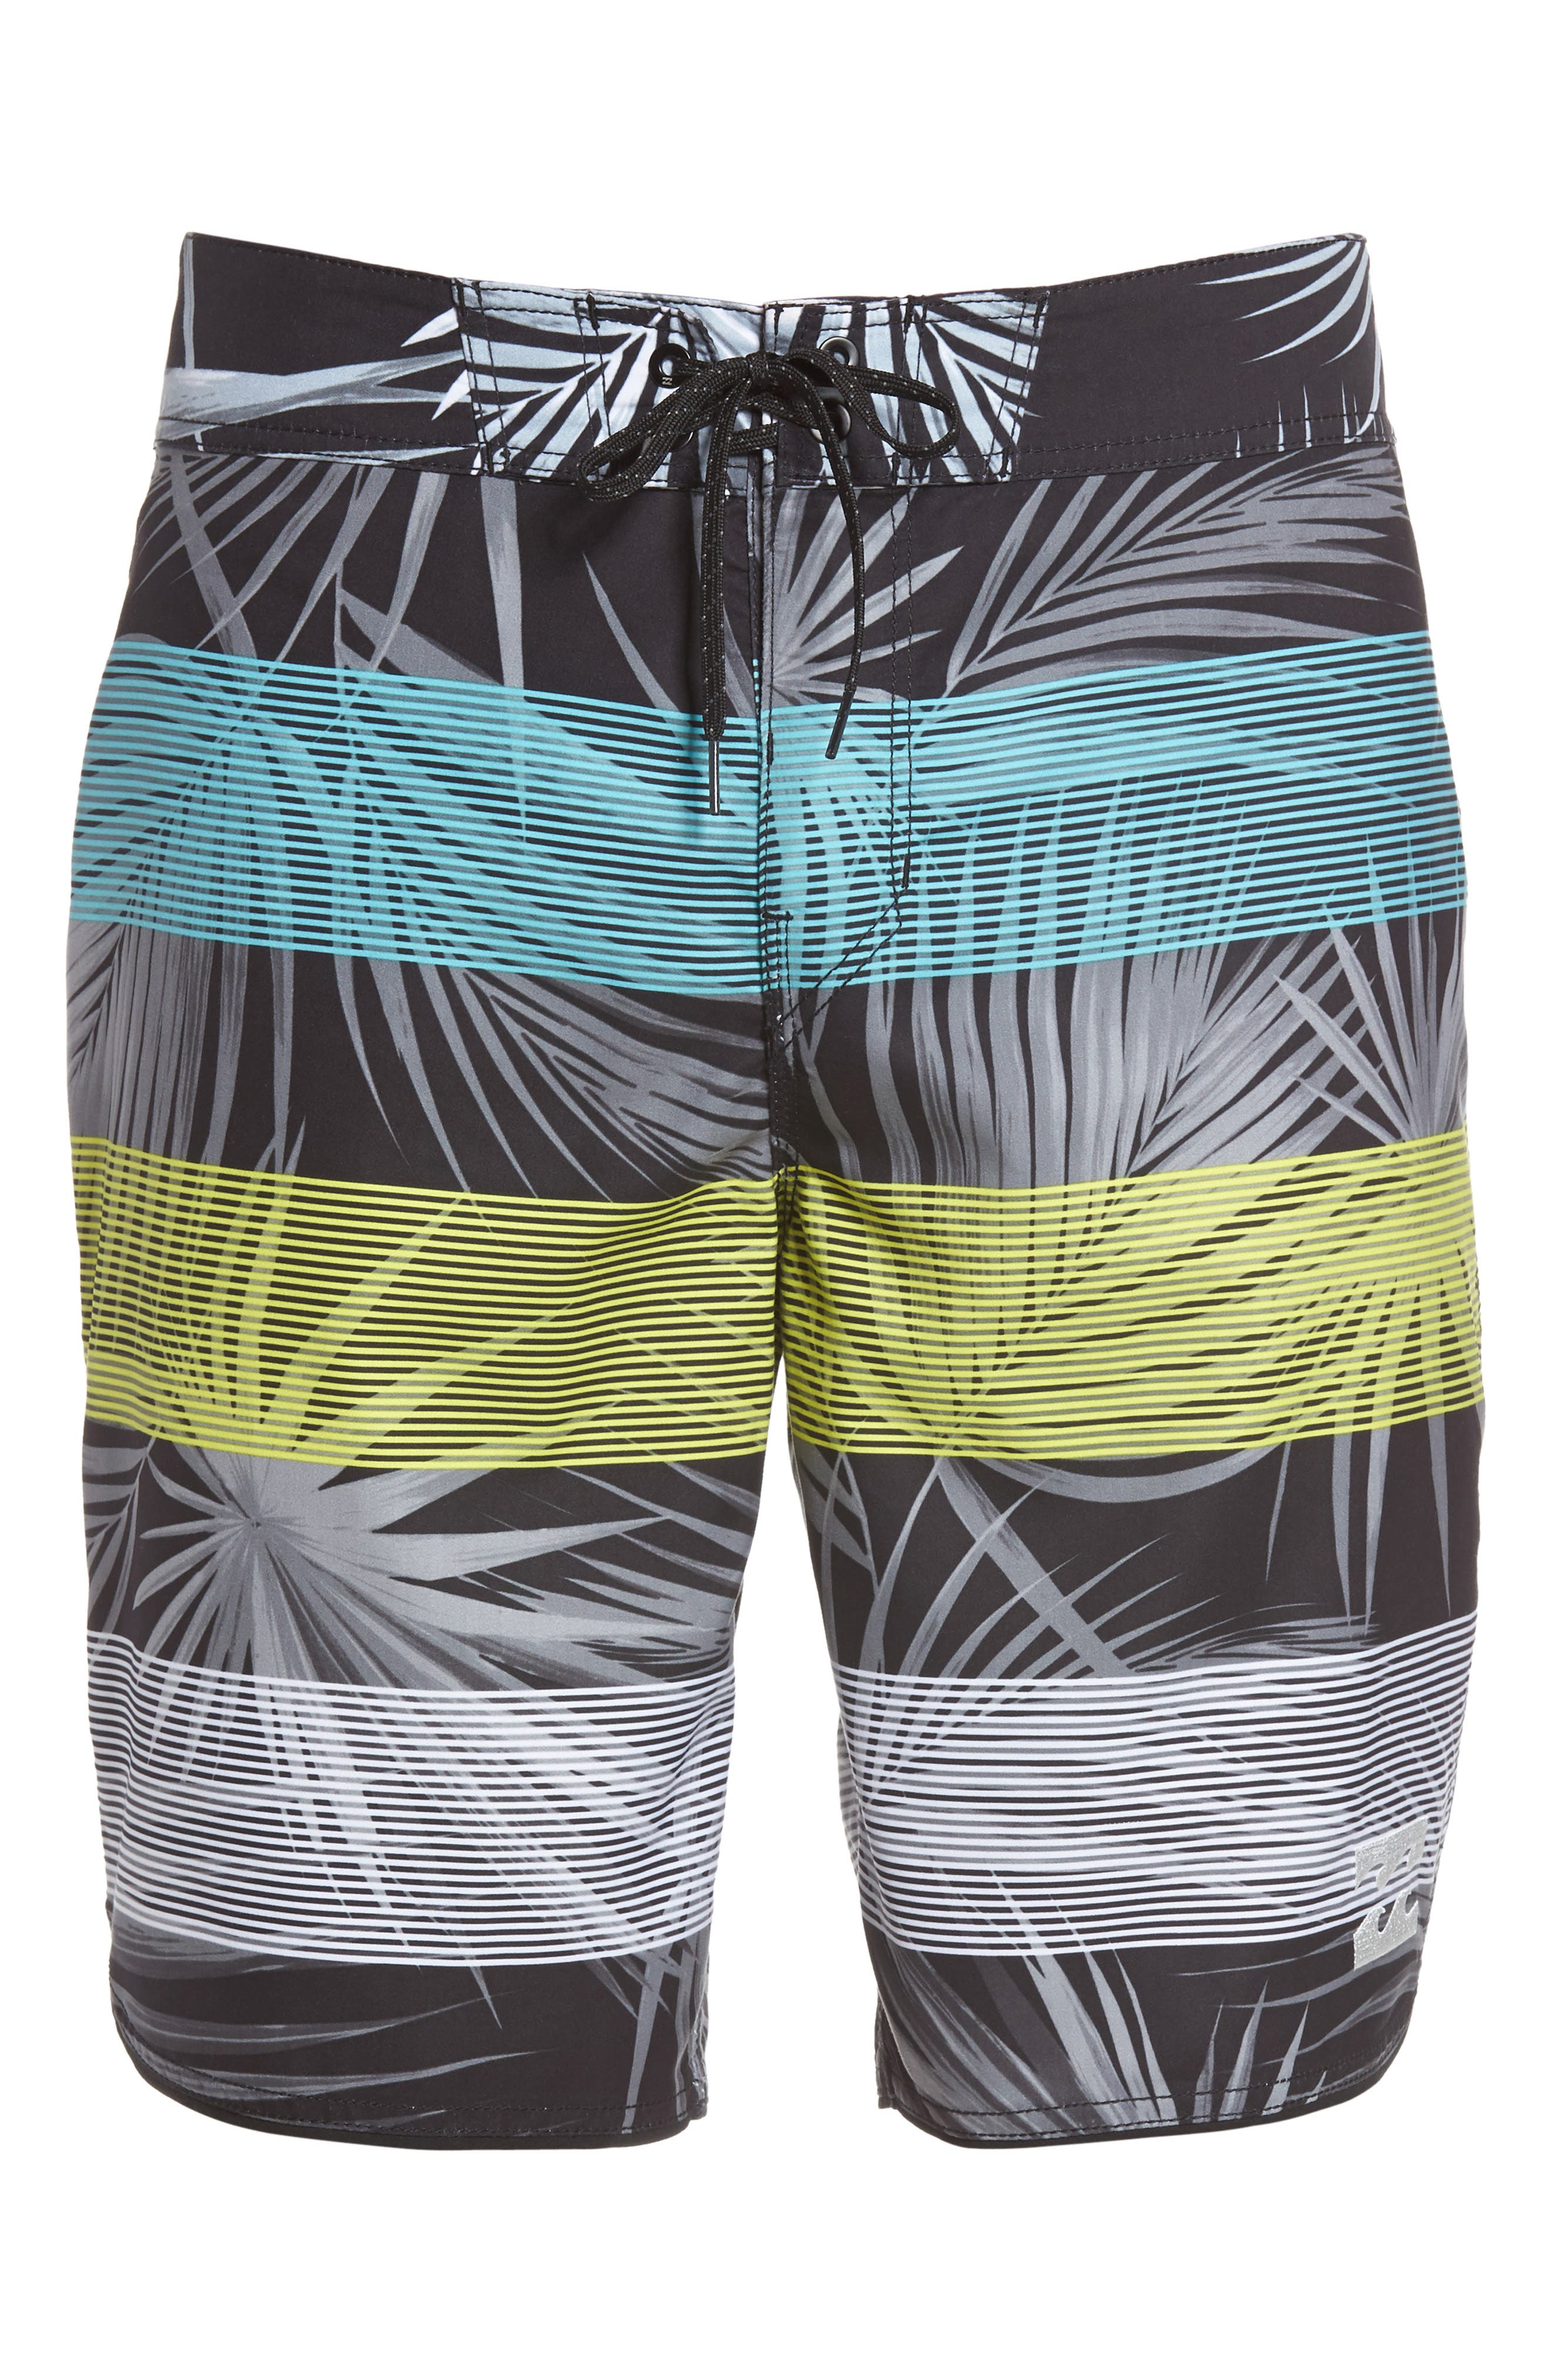 73 OG Stripe Board Shorts,                             Alternate thumbnail 6, color,                             001